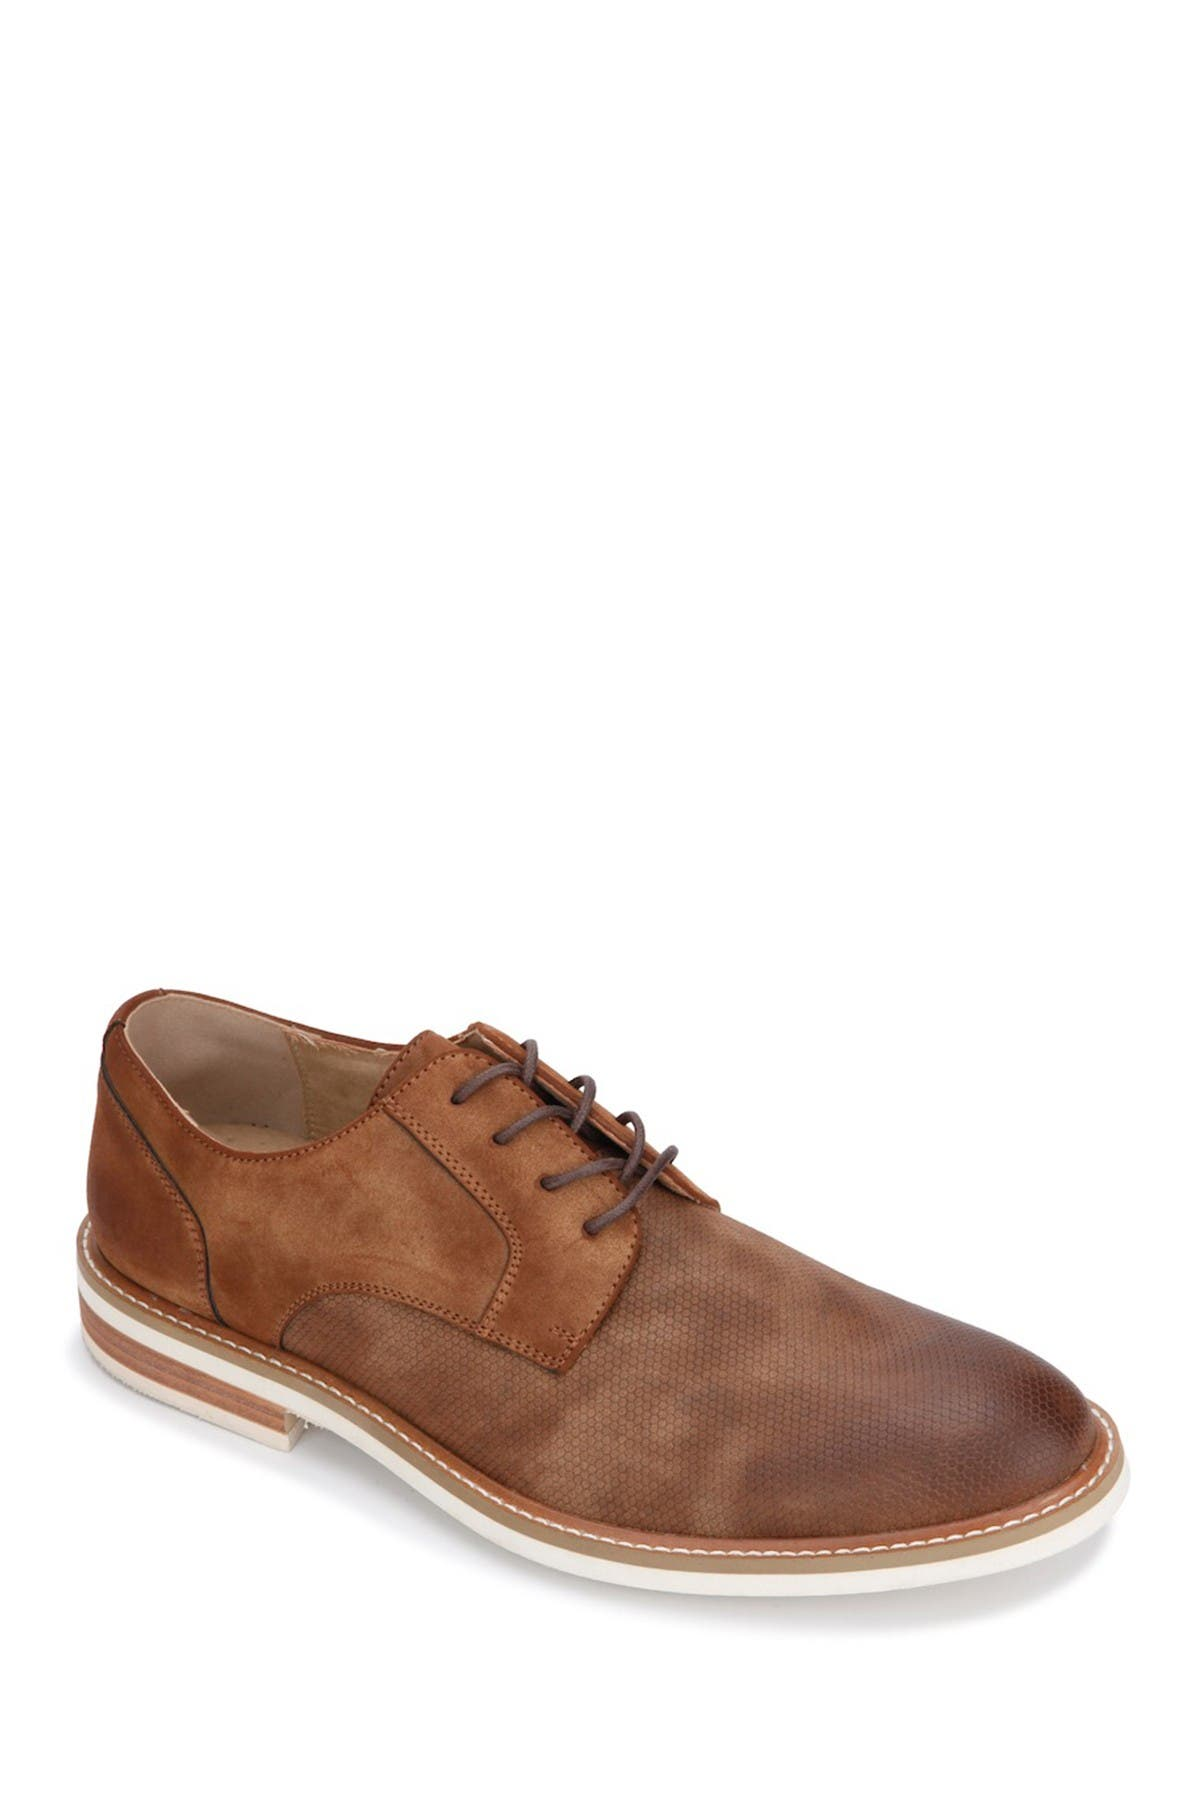 Image of Kenneth Cole Reaction Jimmie Plain Toe Derby